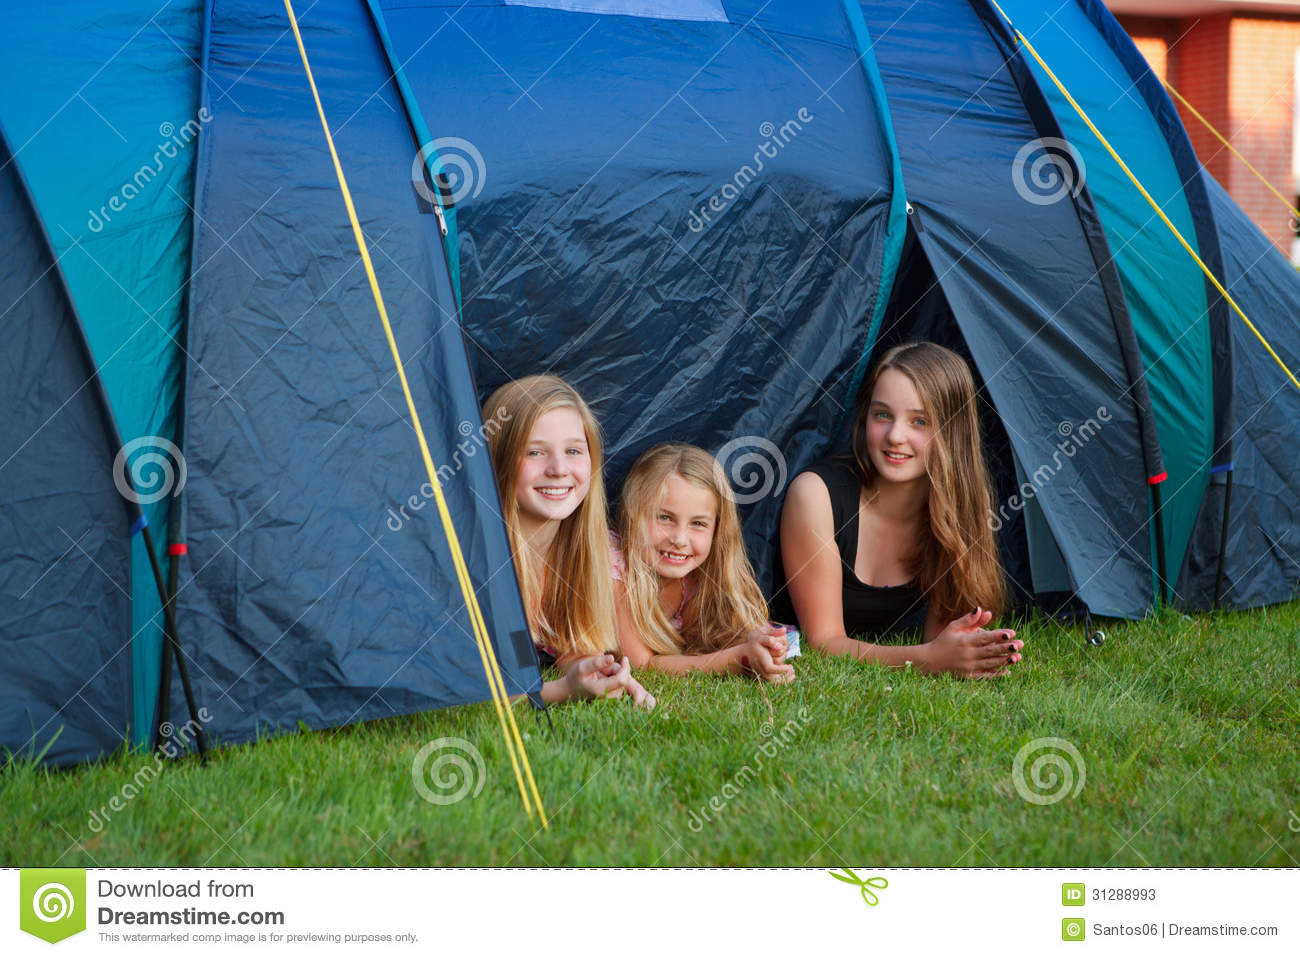 Three girls c&ing  sc 1 st  Dreamstime.com & Three girls camping stock image. Image of nature green - 31288993